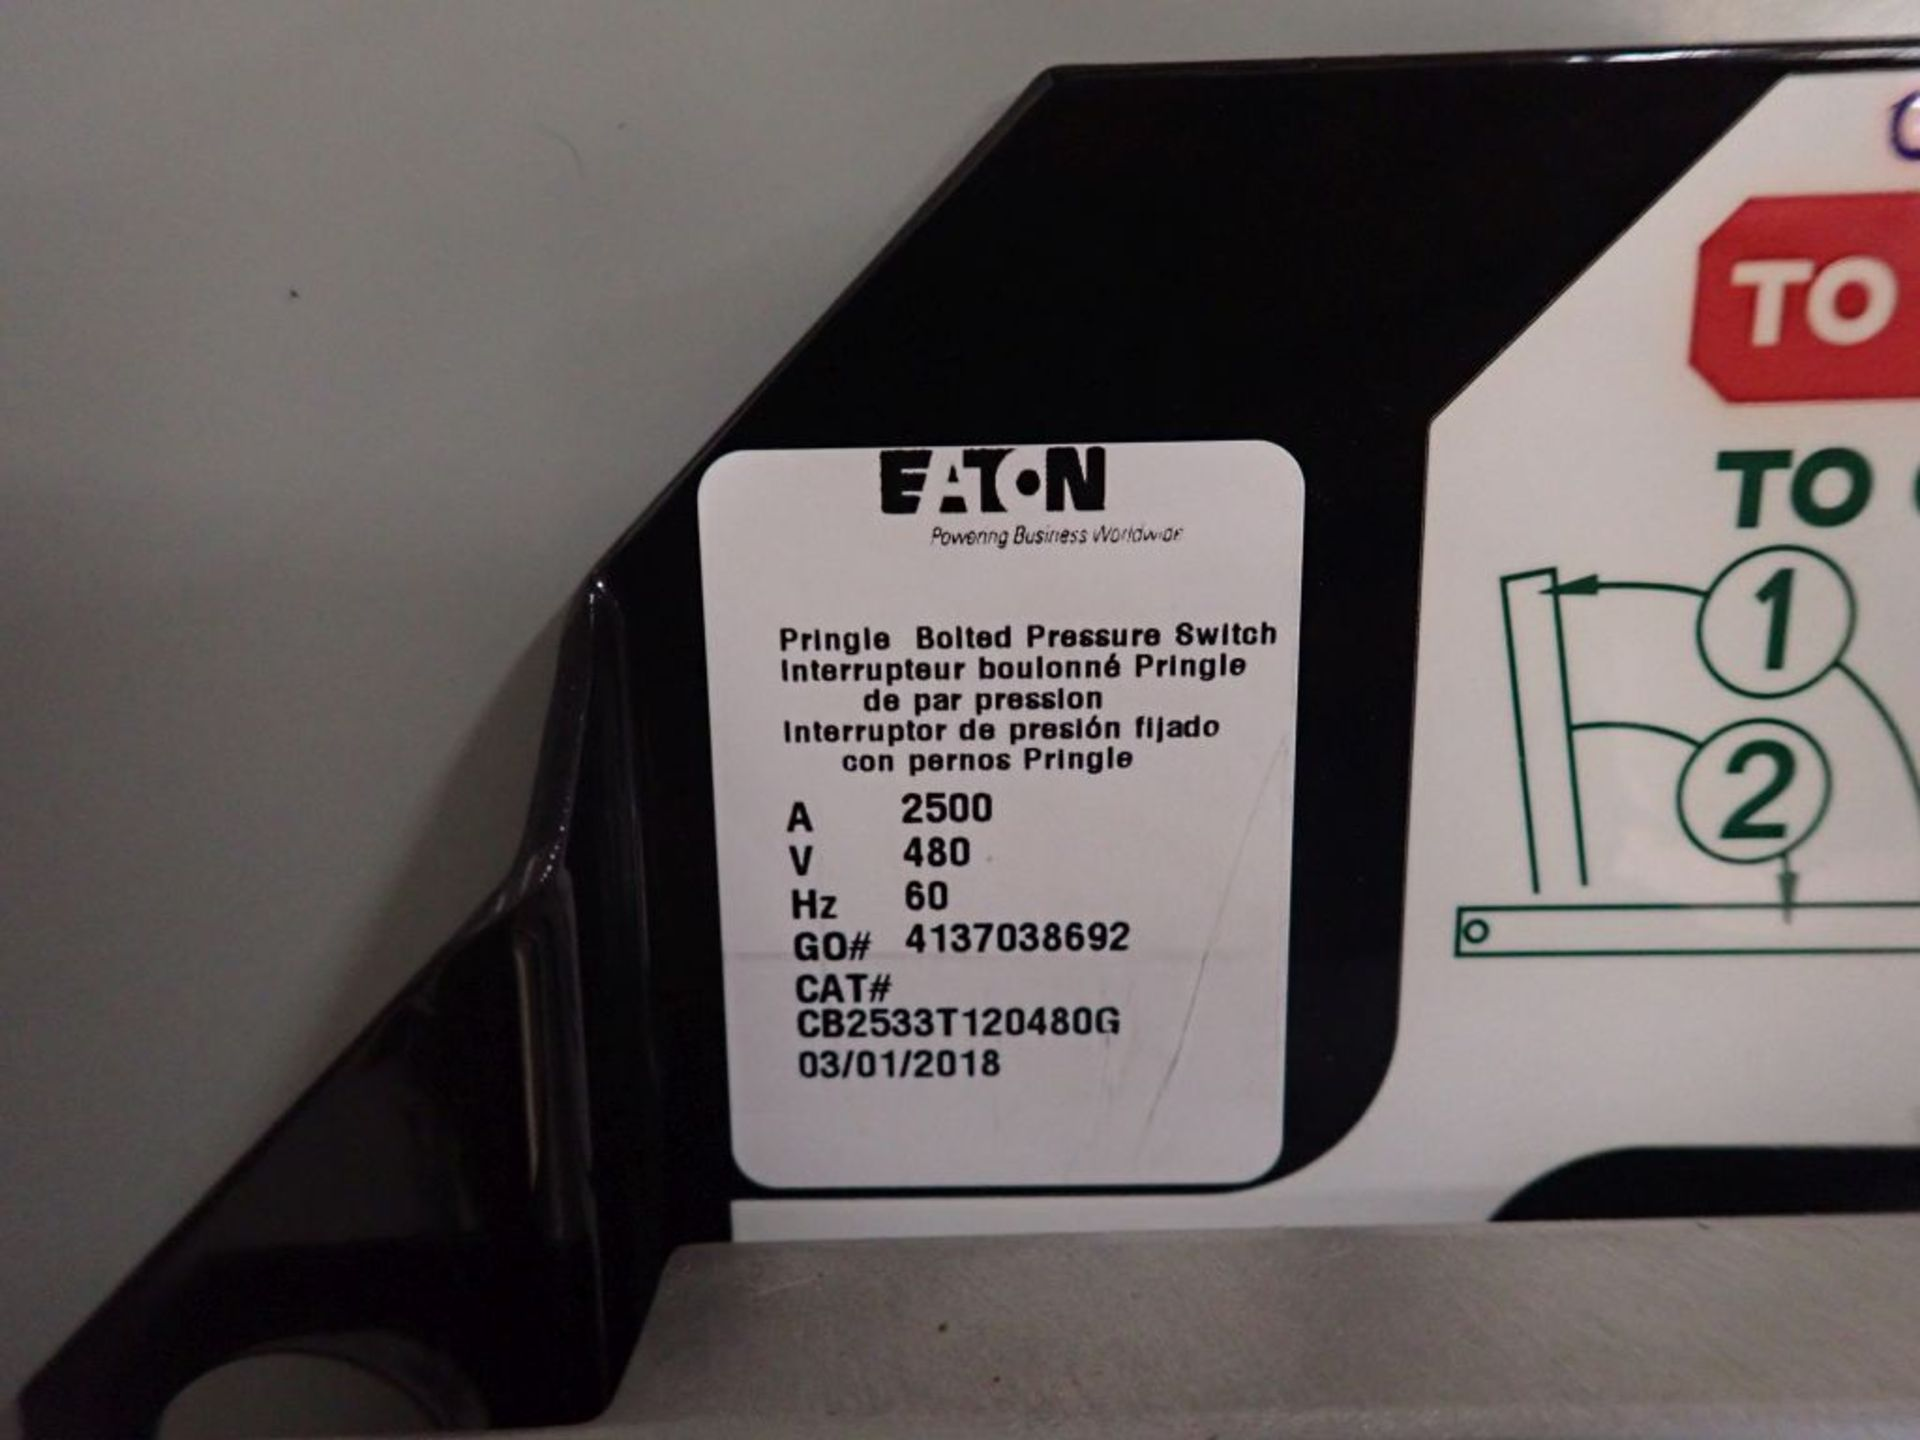 Eaton Pow-R-Line Switchboard   PRL-C; 480V; 3 PH; (1) Pringle Bolted Pressure Switch, 2500A, Cat No. - Image 12 of 13